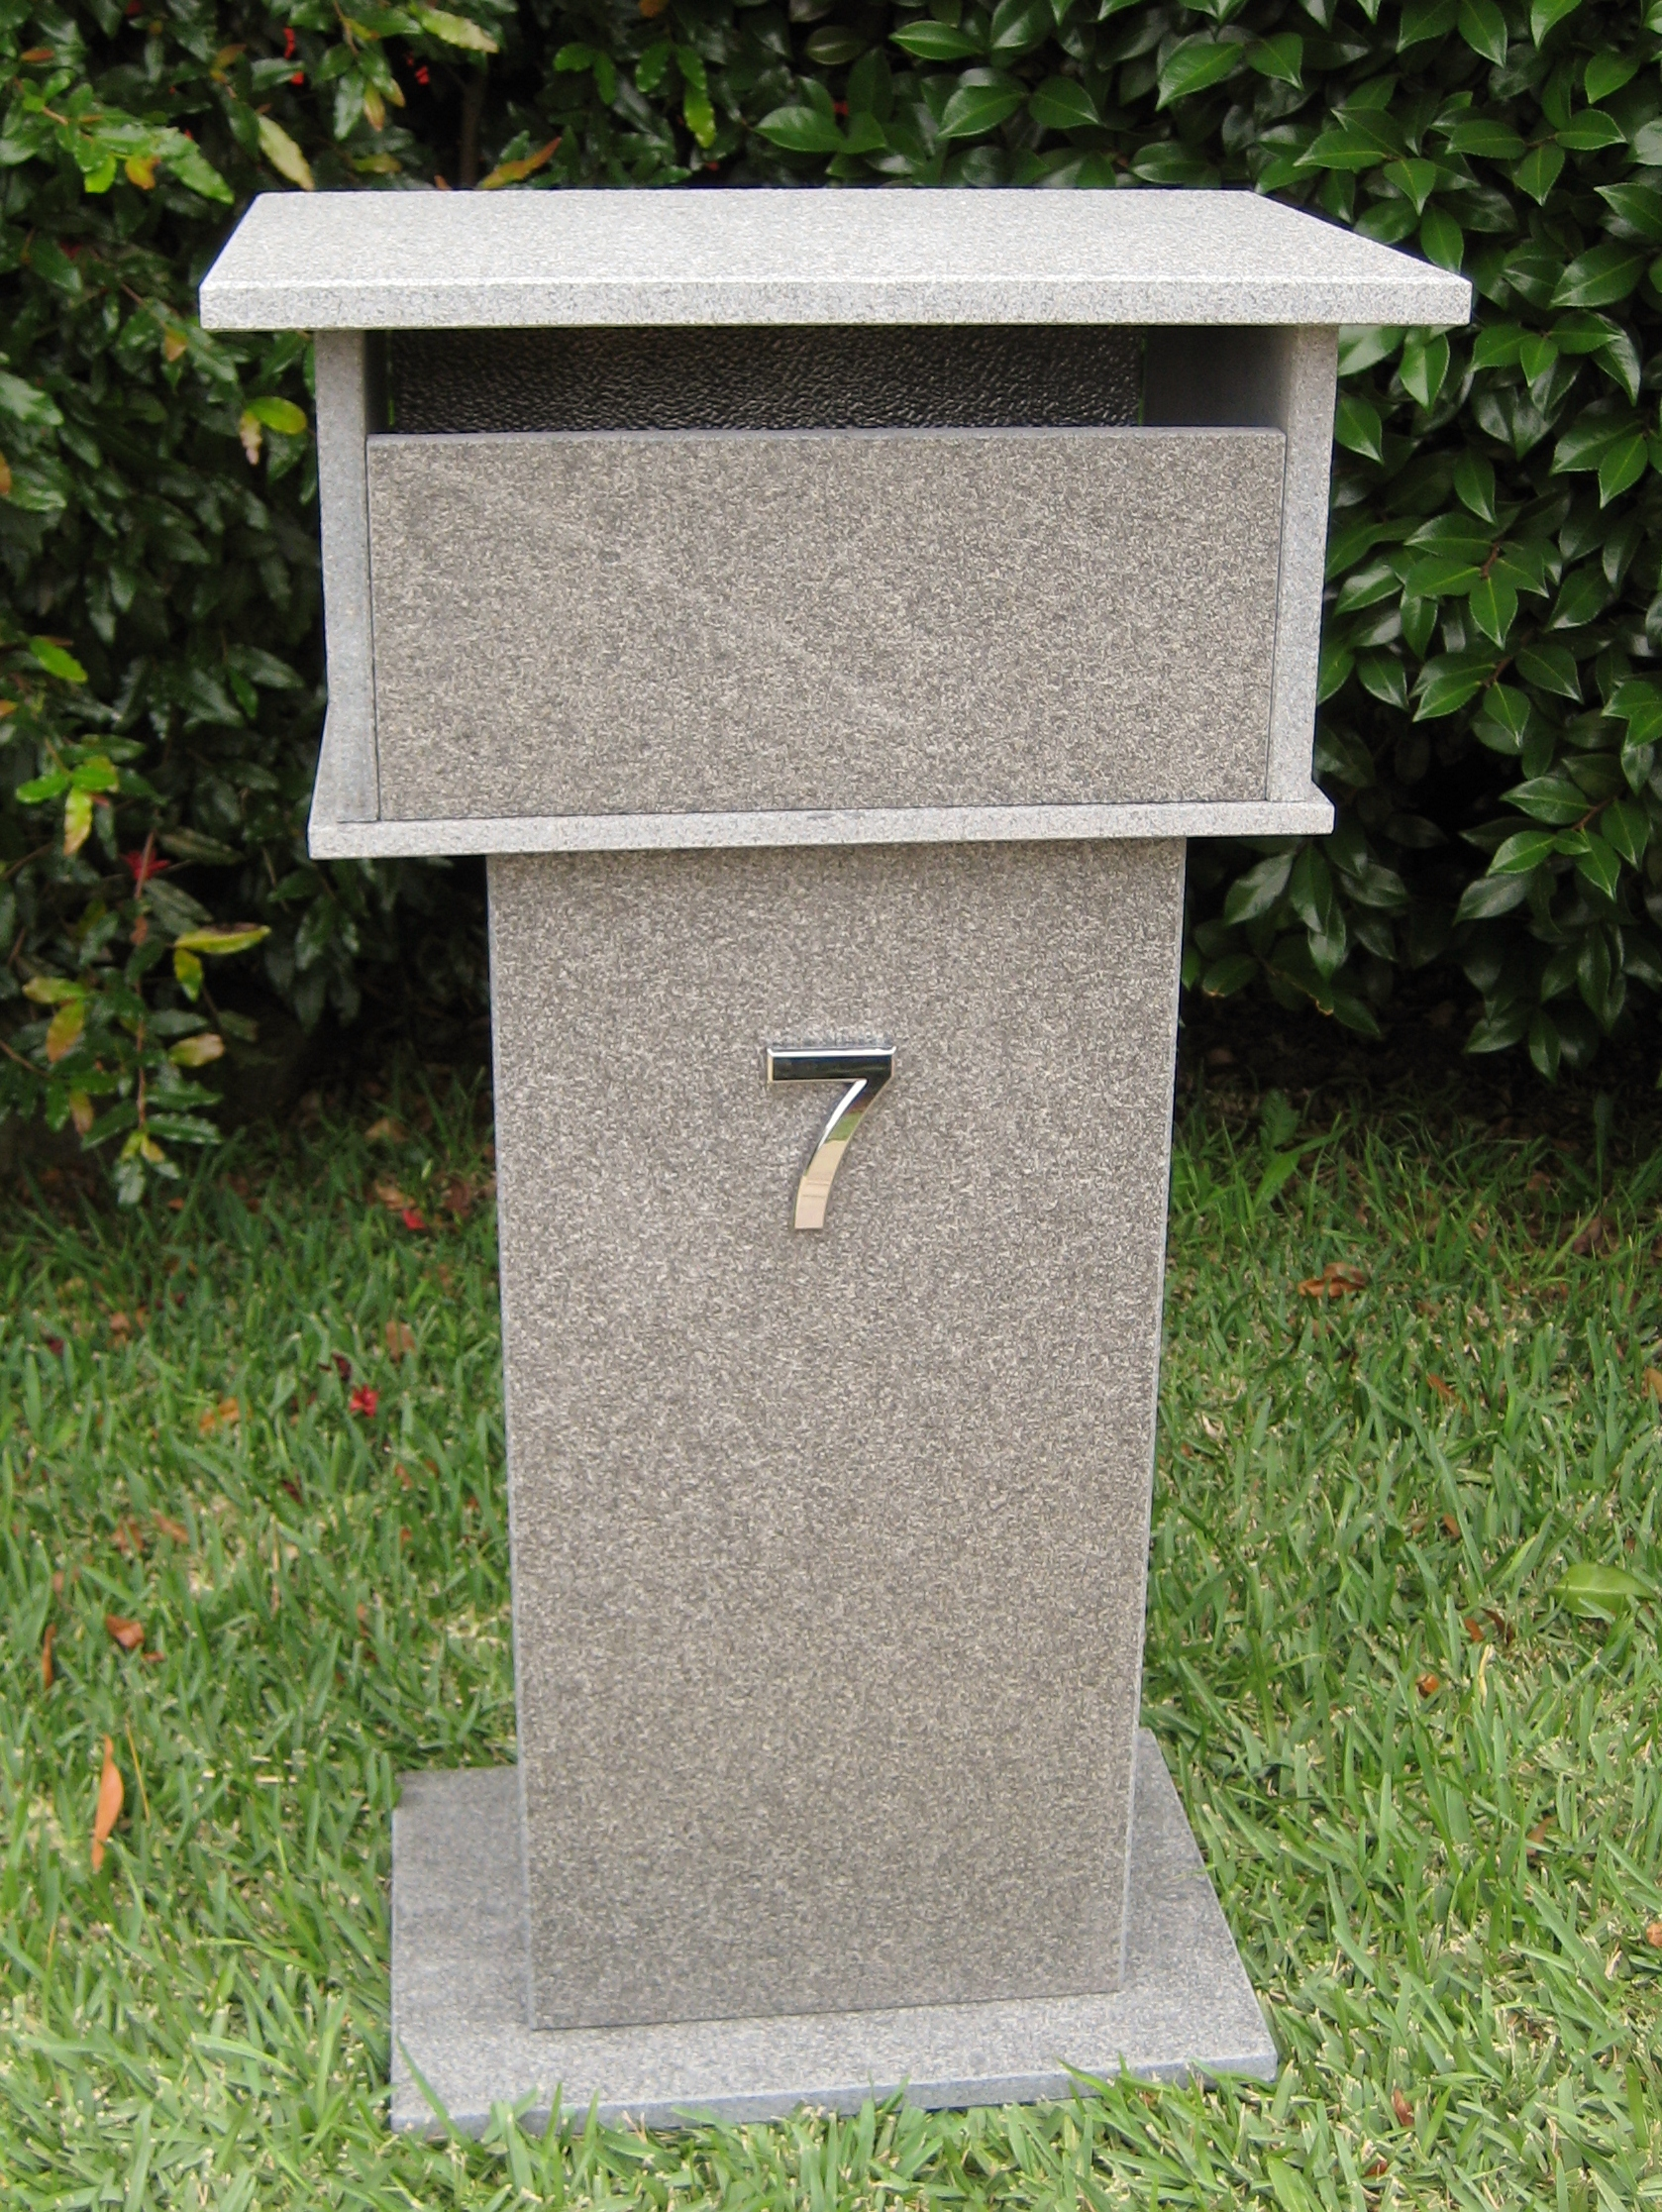 70. Blue stone letterbox with bushhammered finish. Back 2 key aluminium door. Tough material. Sizes 820x400x300 $550